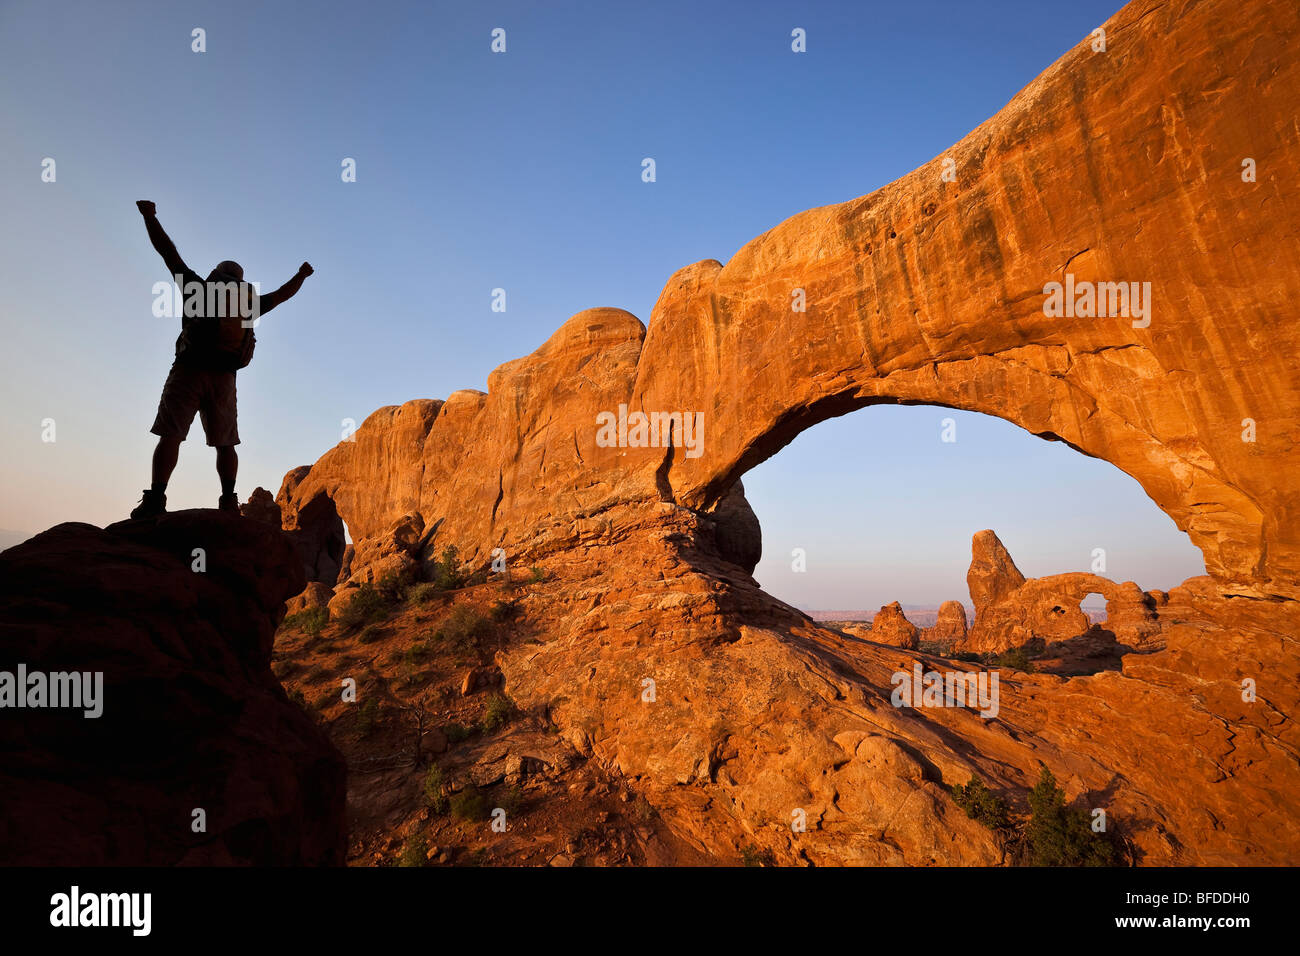 A silhouetted hiker raises his arms beside an arch in Arches National Park, Utah. - Stock Image